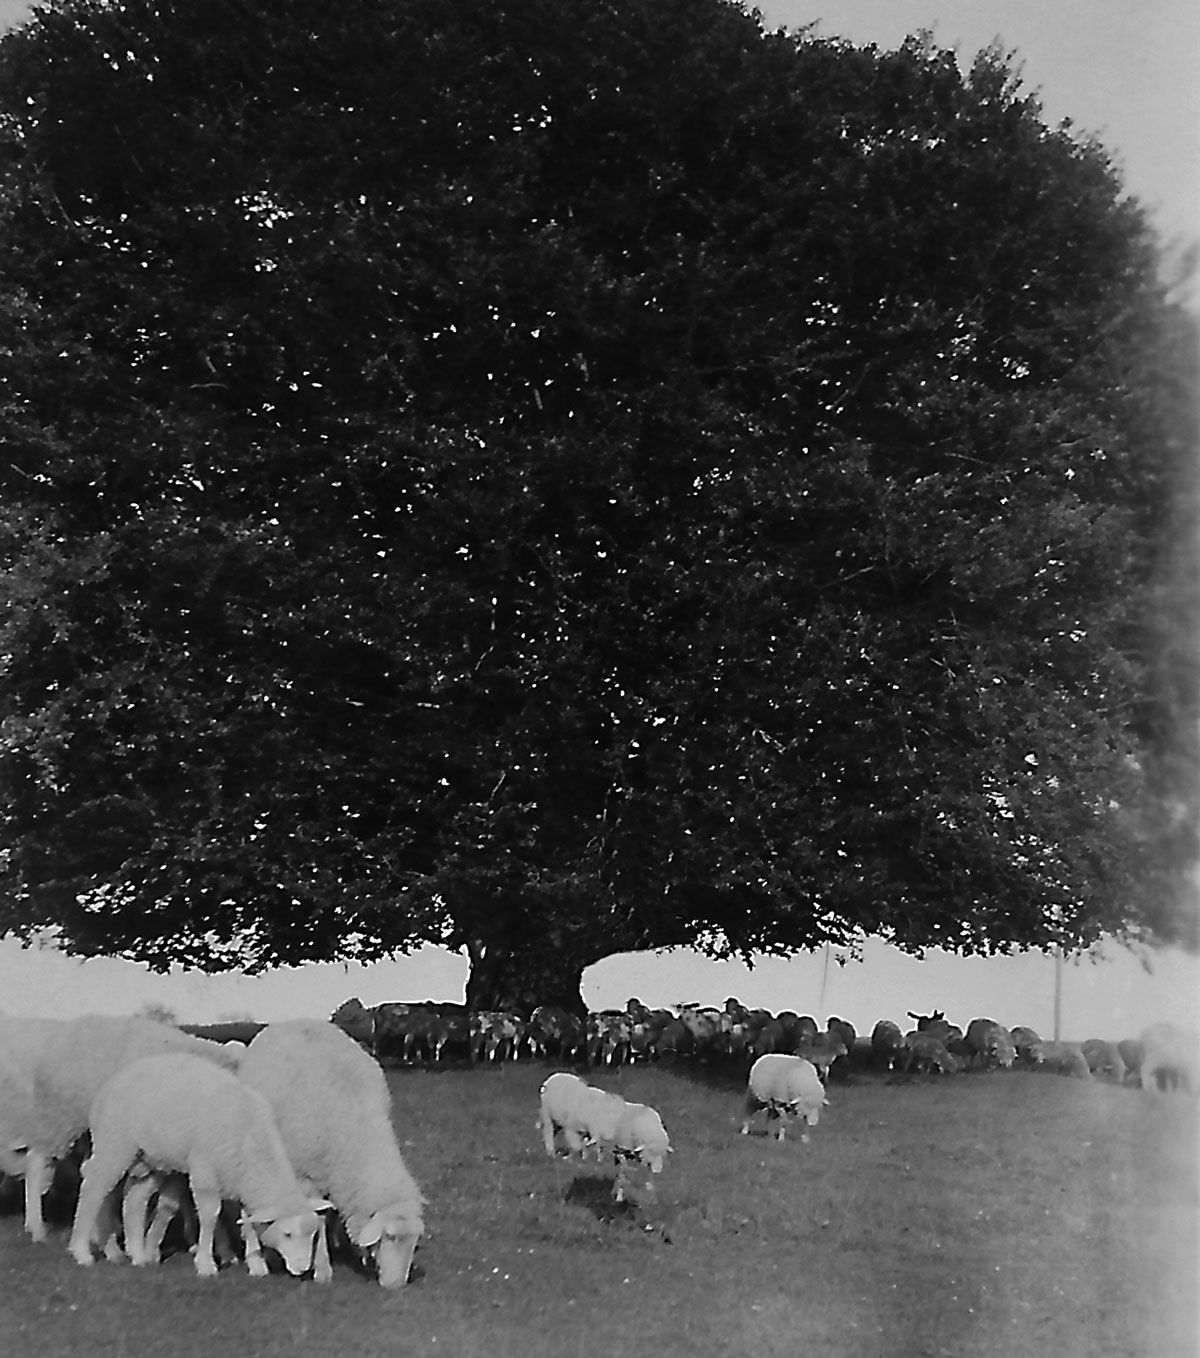 A flock of sheep in the shade of the Bavaria Beech